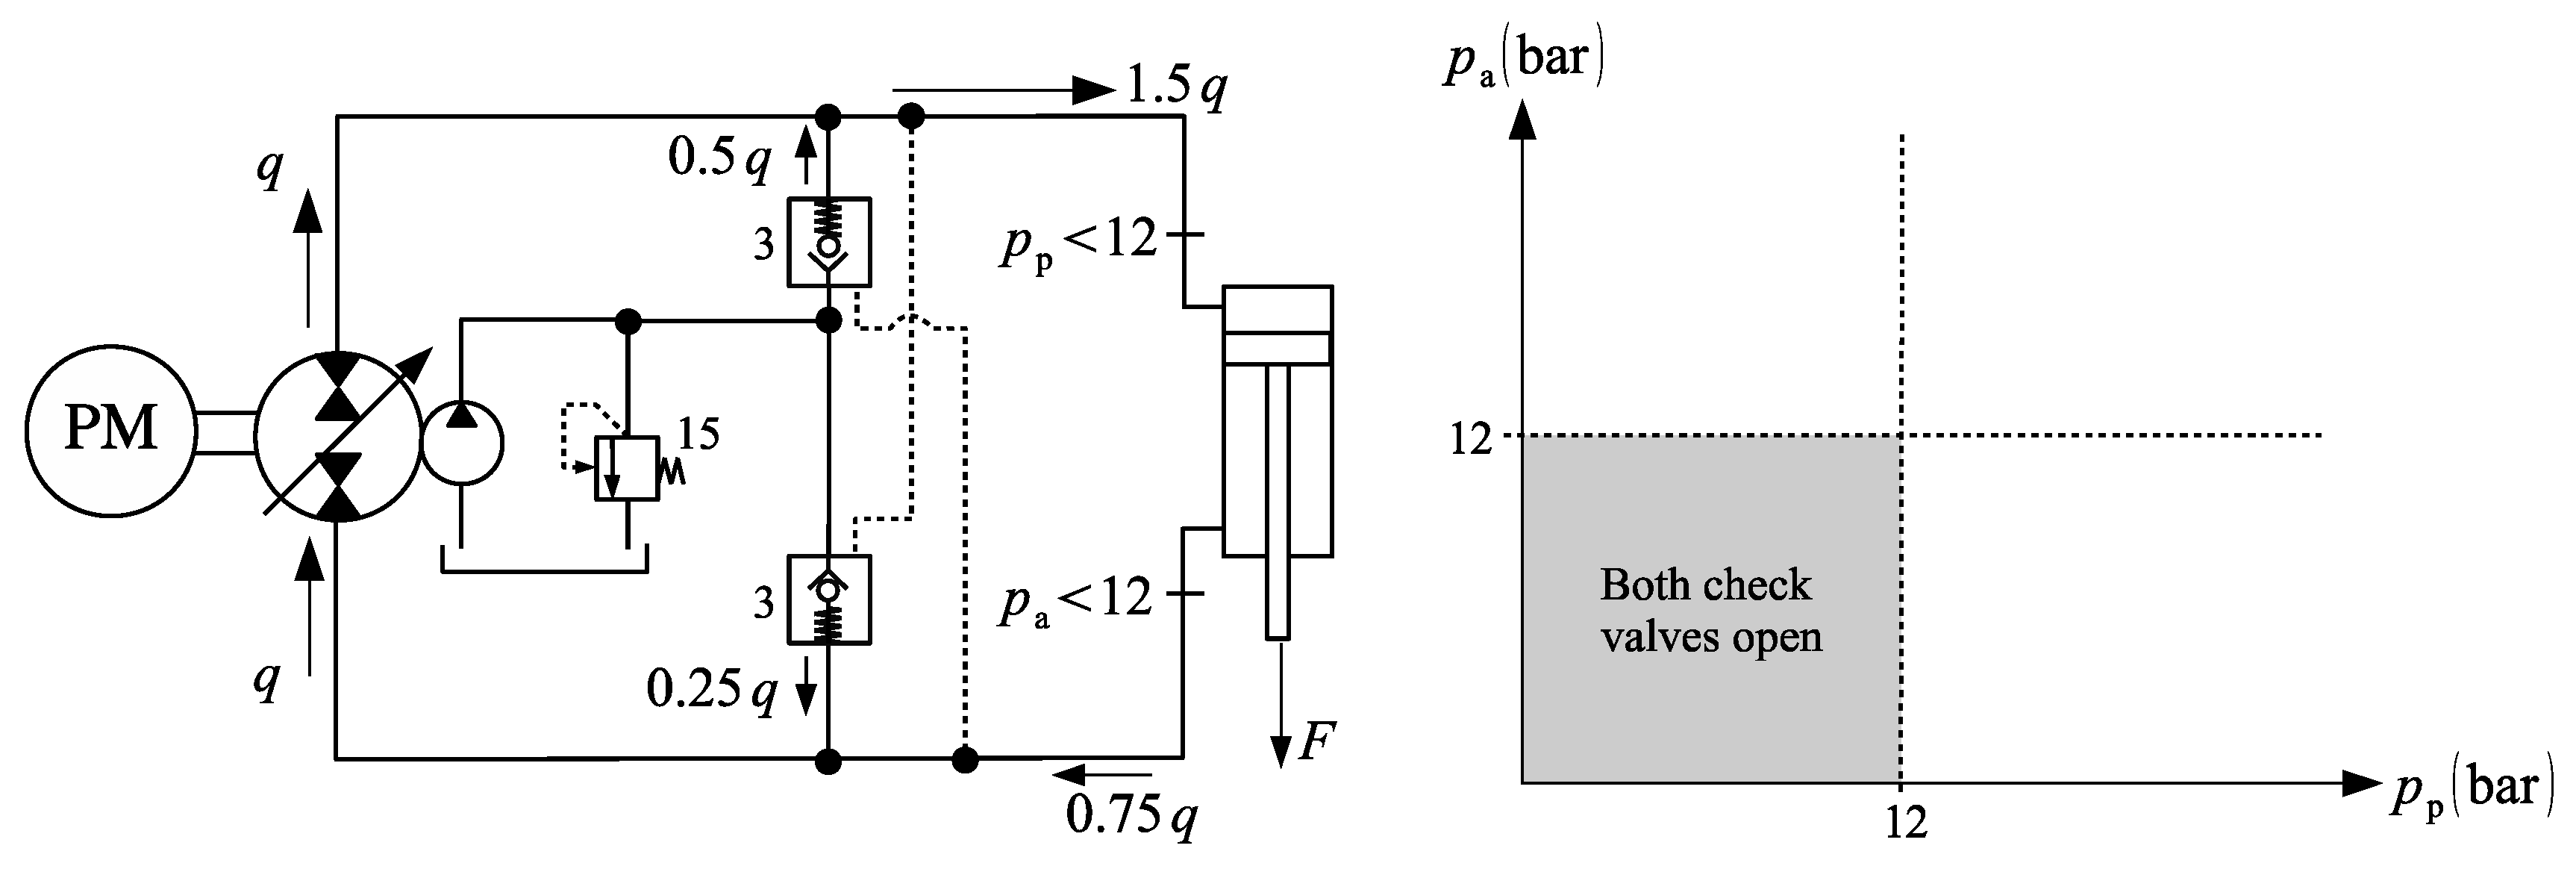 Actuators | Free Full-Text | A Critical Analysis of Valve